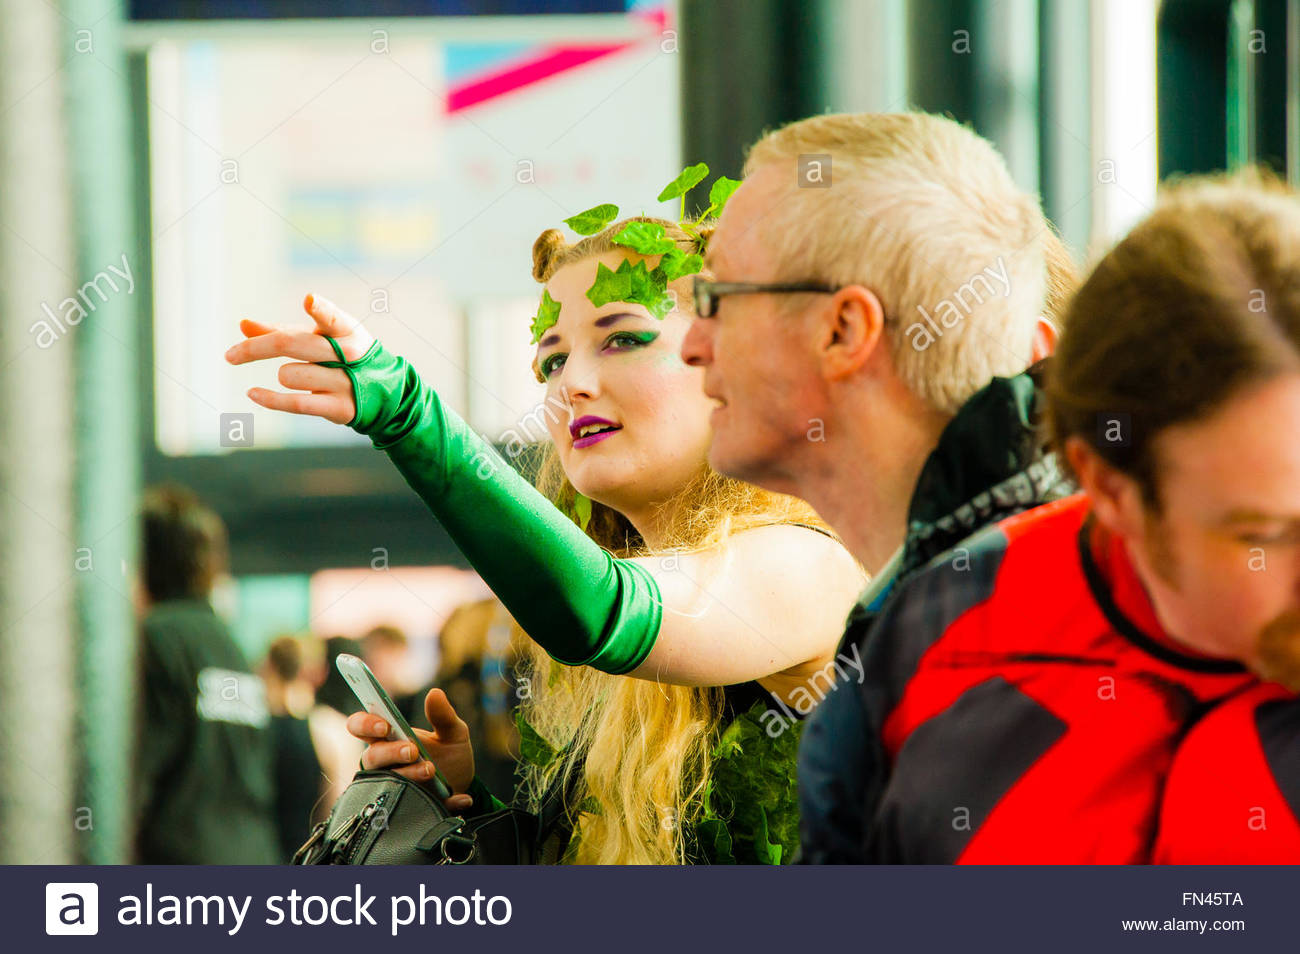 Liverpool, England UK, Sunday 13th March 2016. Fans of Comics, Superheroes & Anime,visit the 2nd day of Liverpool Stock Photo